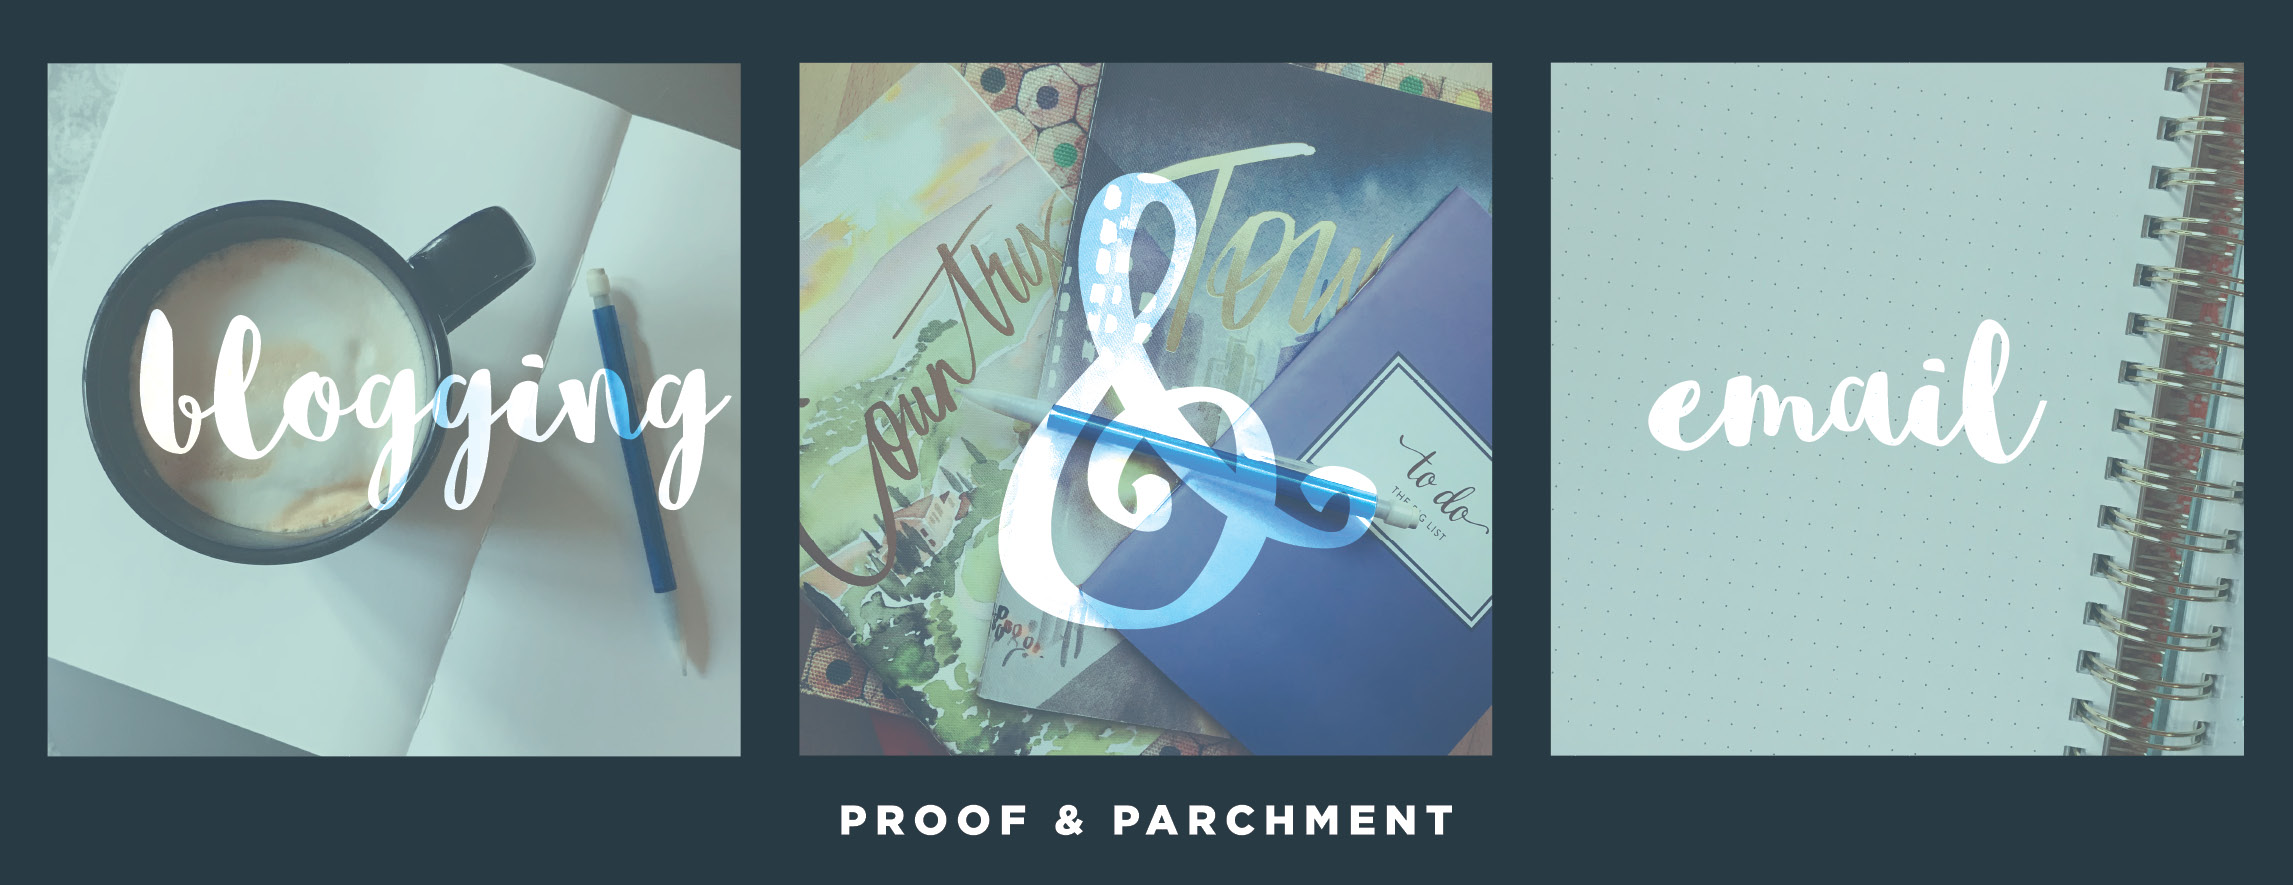 Blogging & Email goals for Proof & Parchment